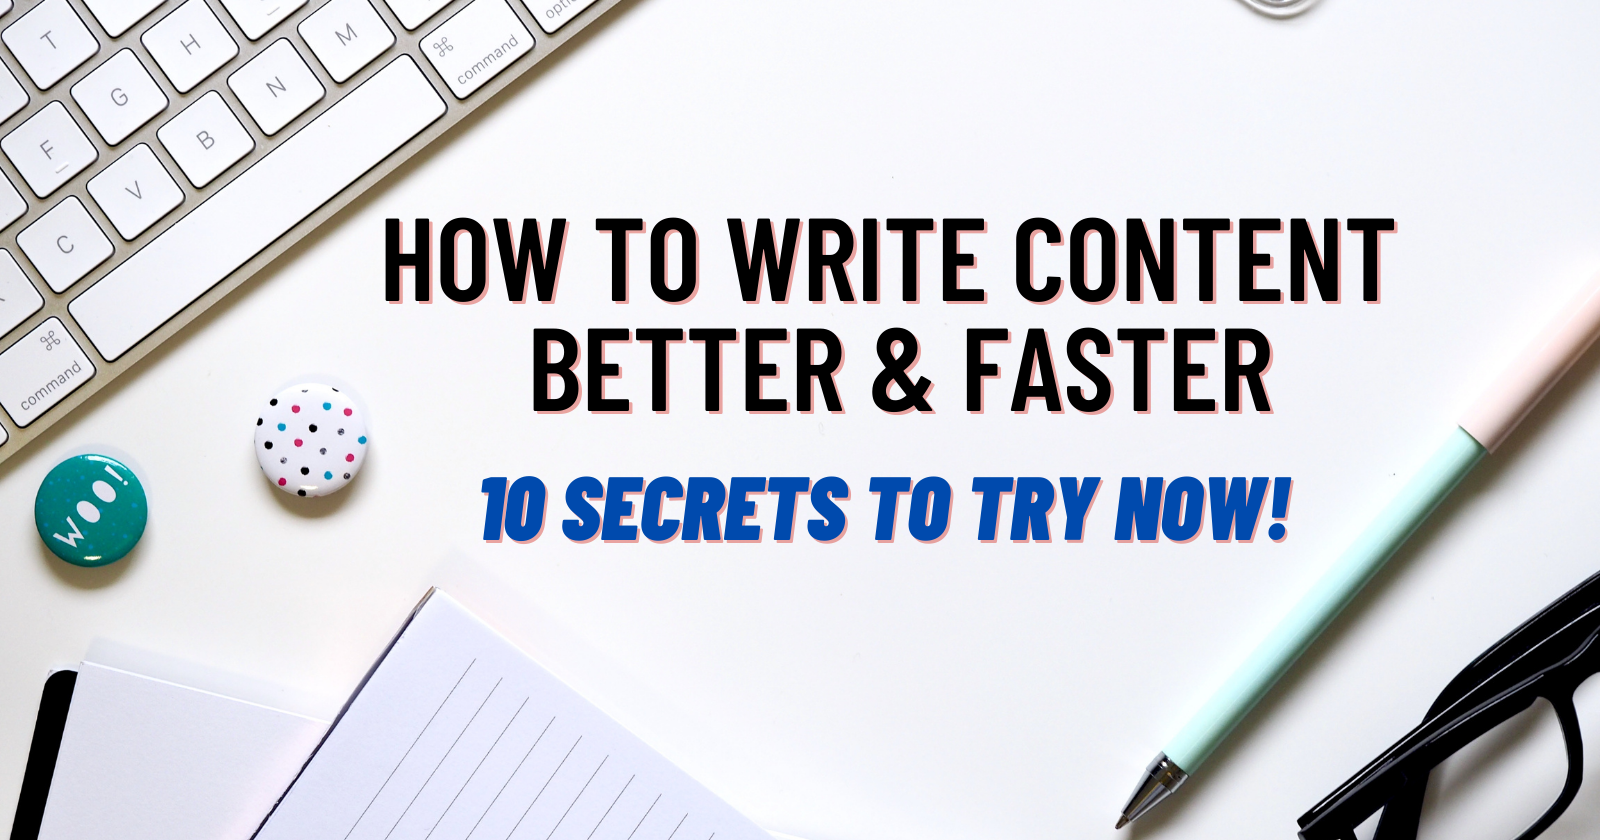 How to Write Content Better & Faster: 10 Secrets to Try Now